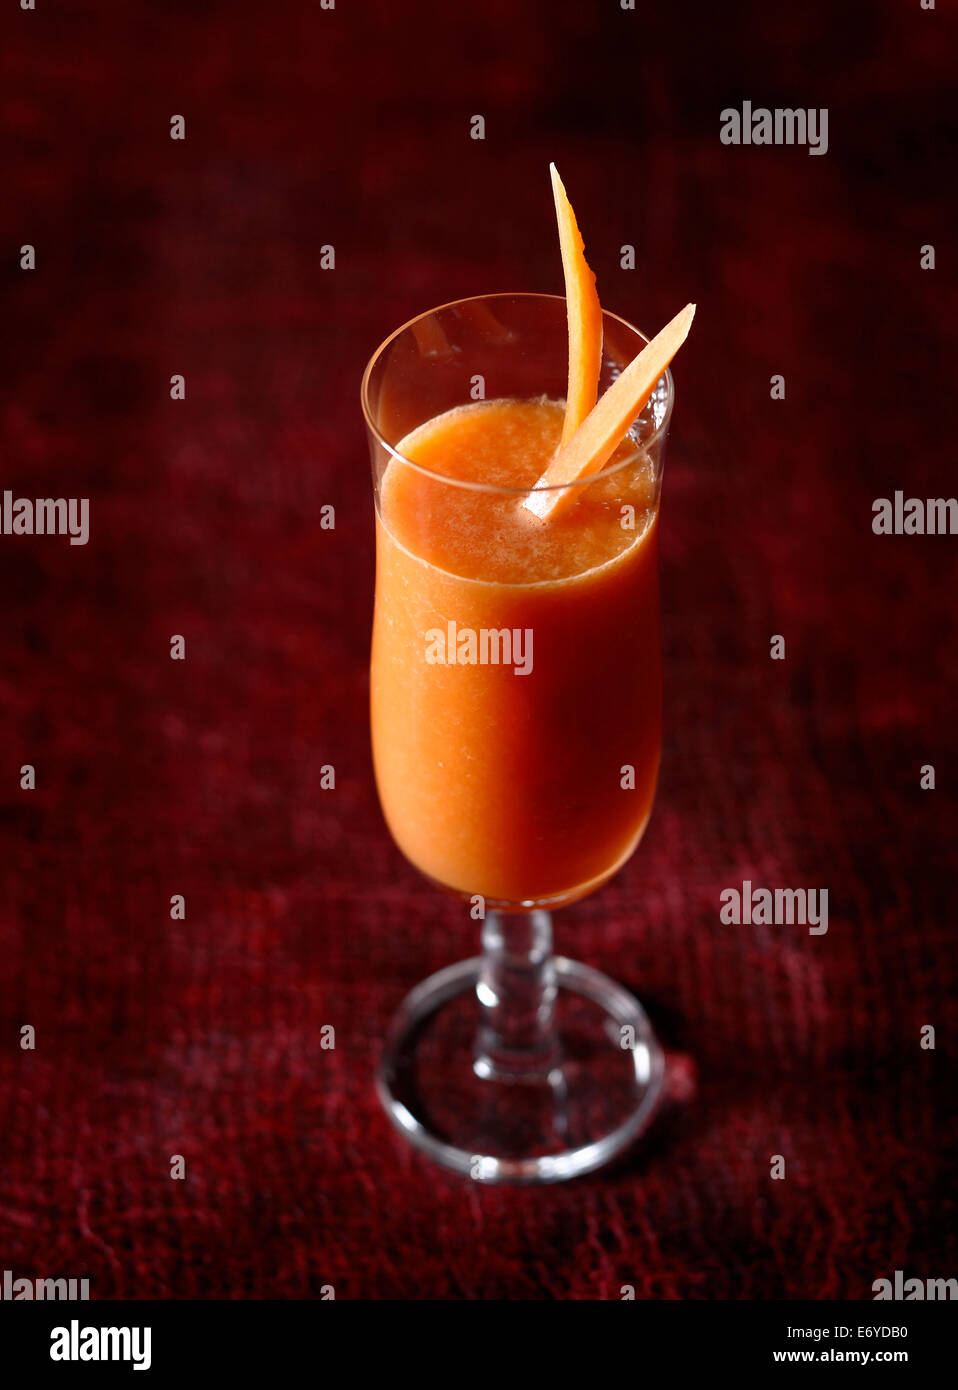 Melon,carotte et jus de citron Photo Stock